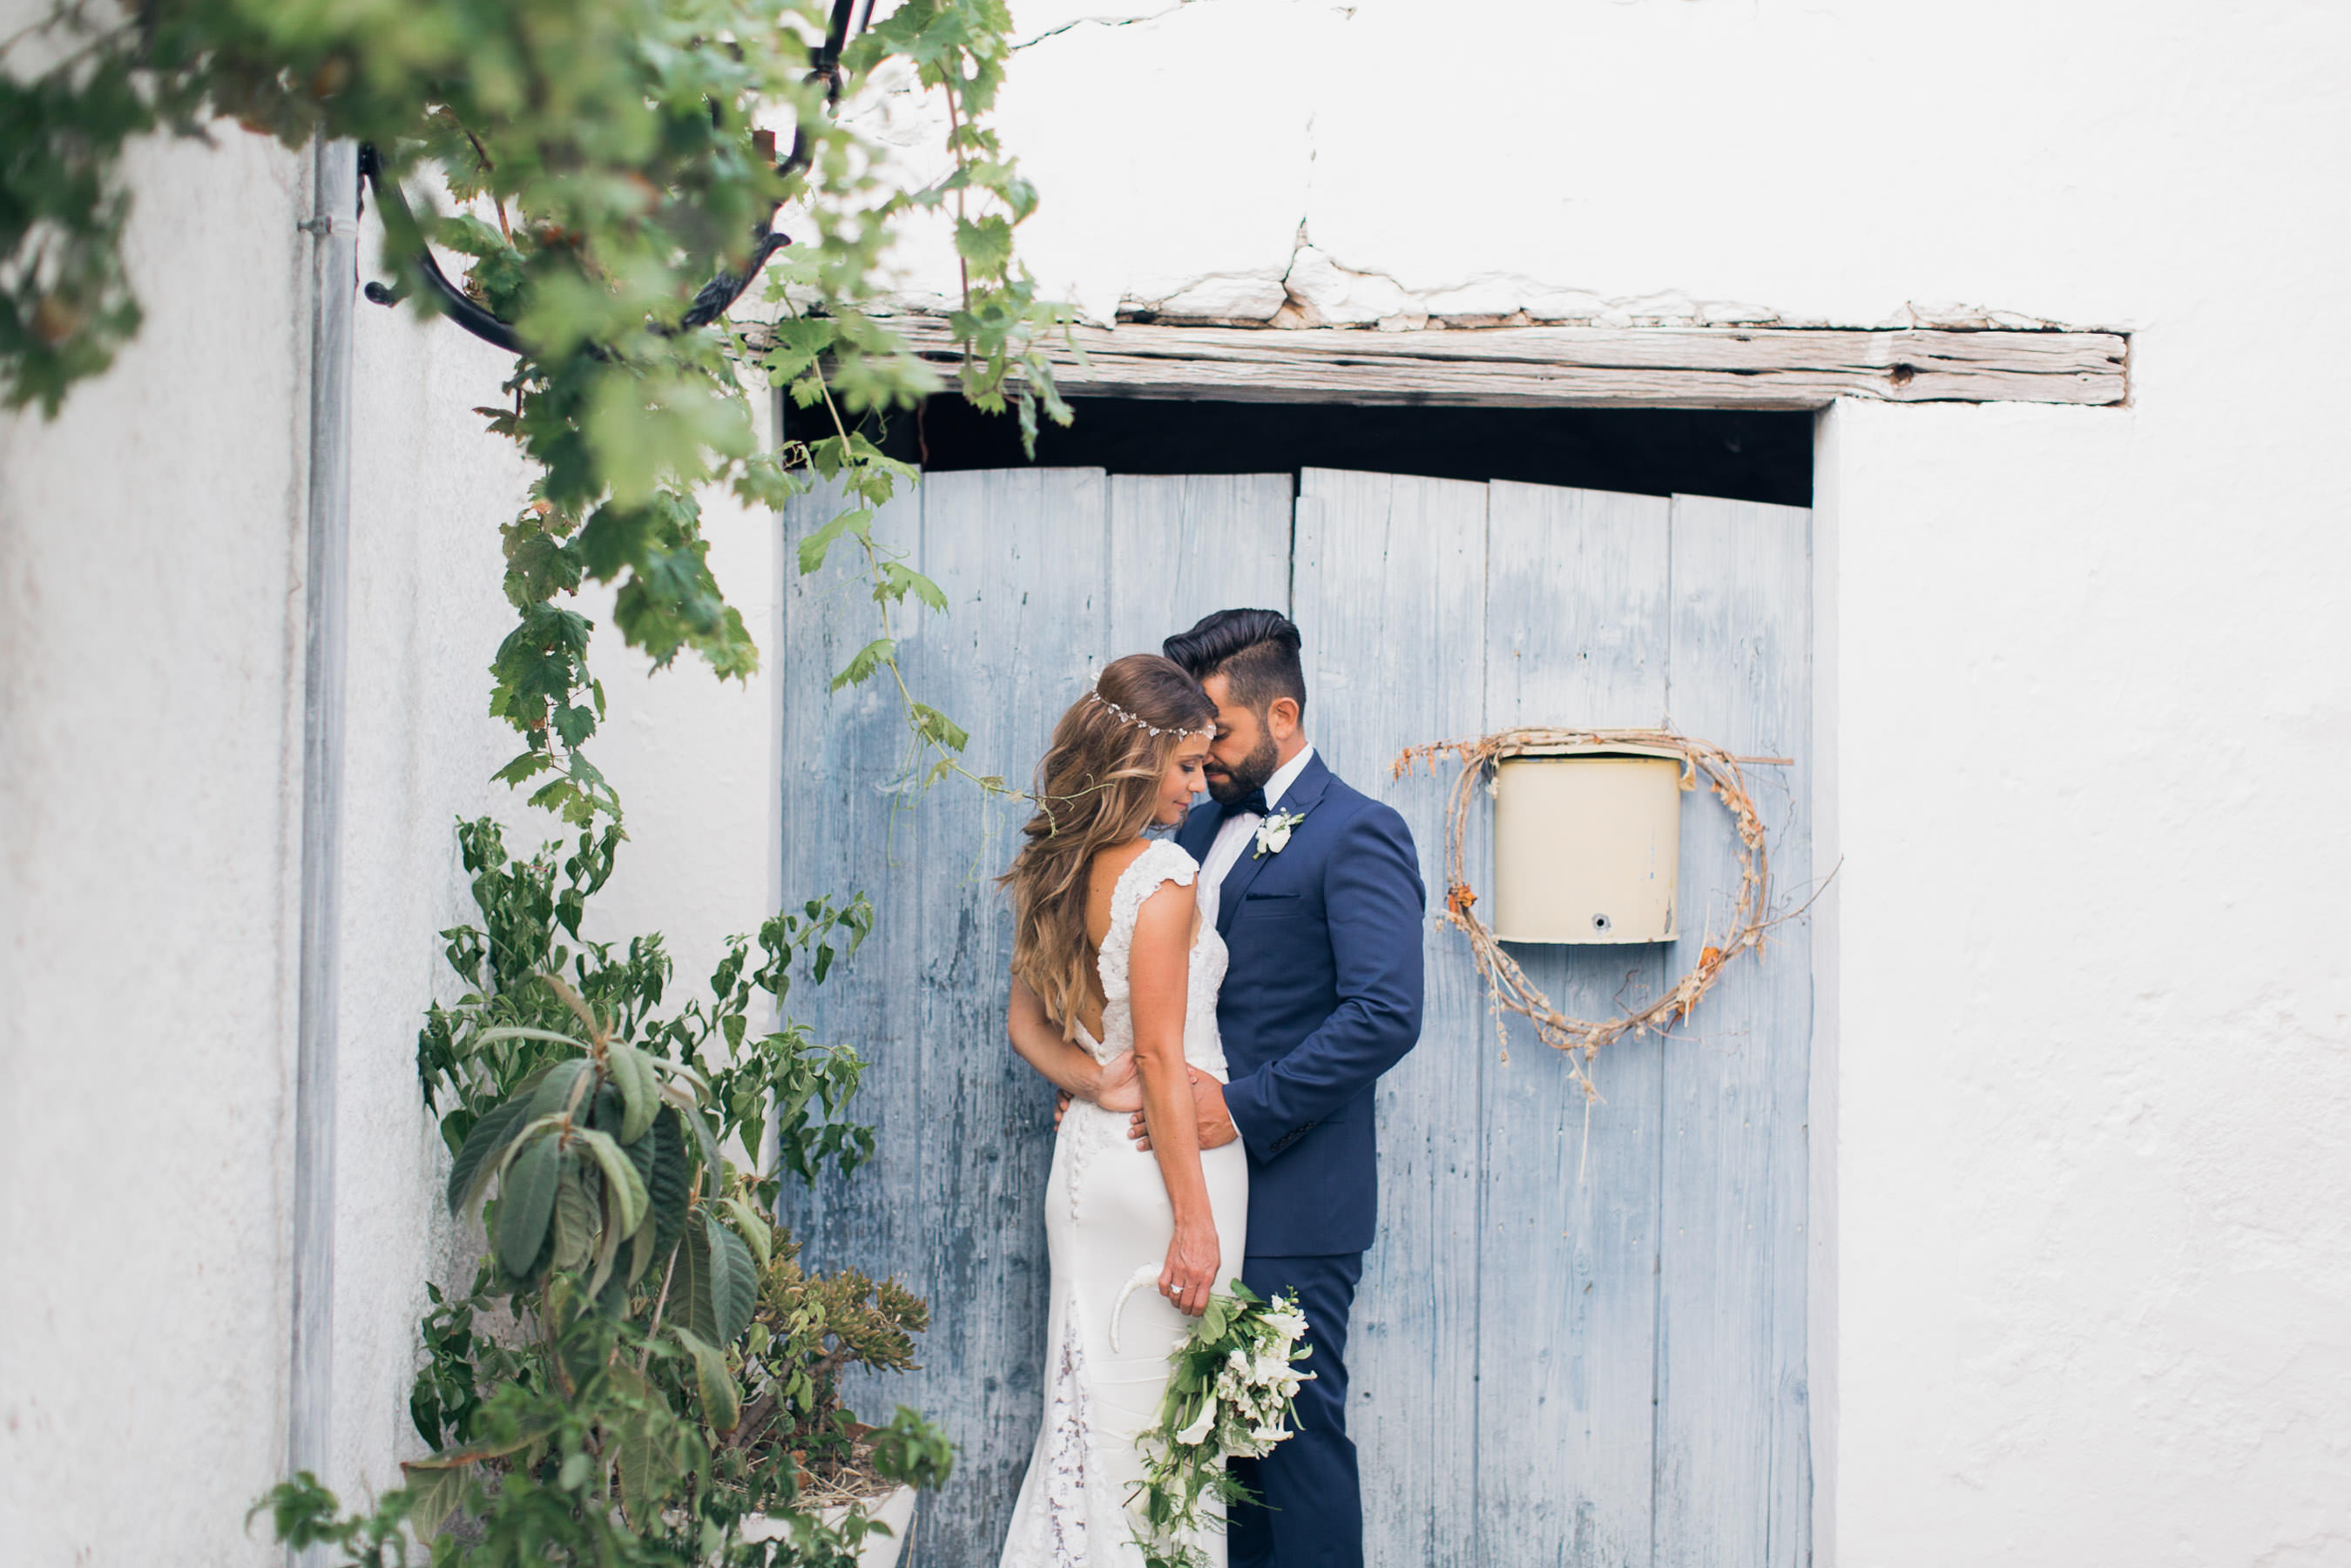 Unique Wedding Ceremonies in Crete